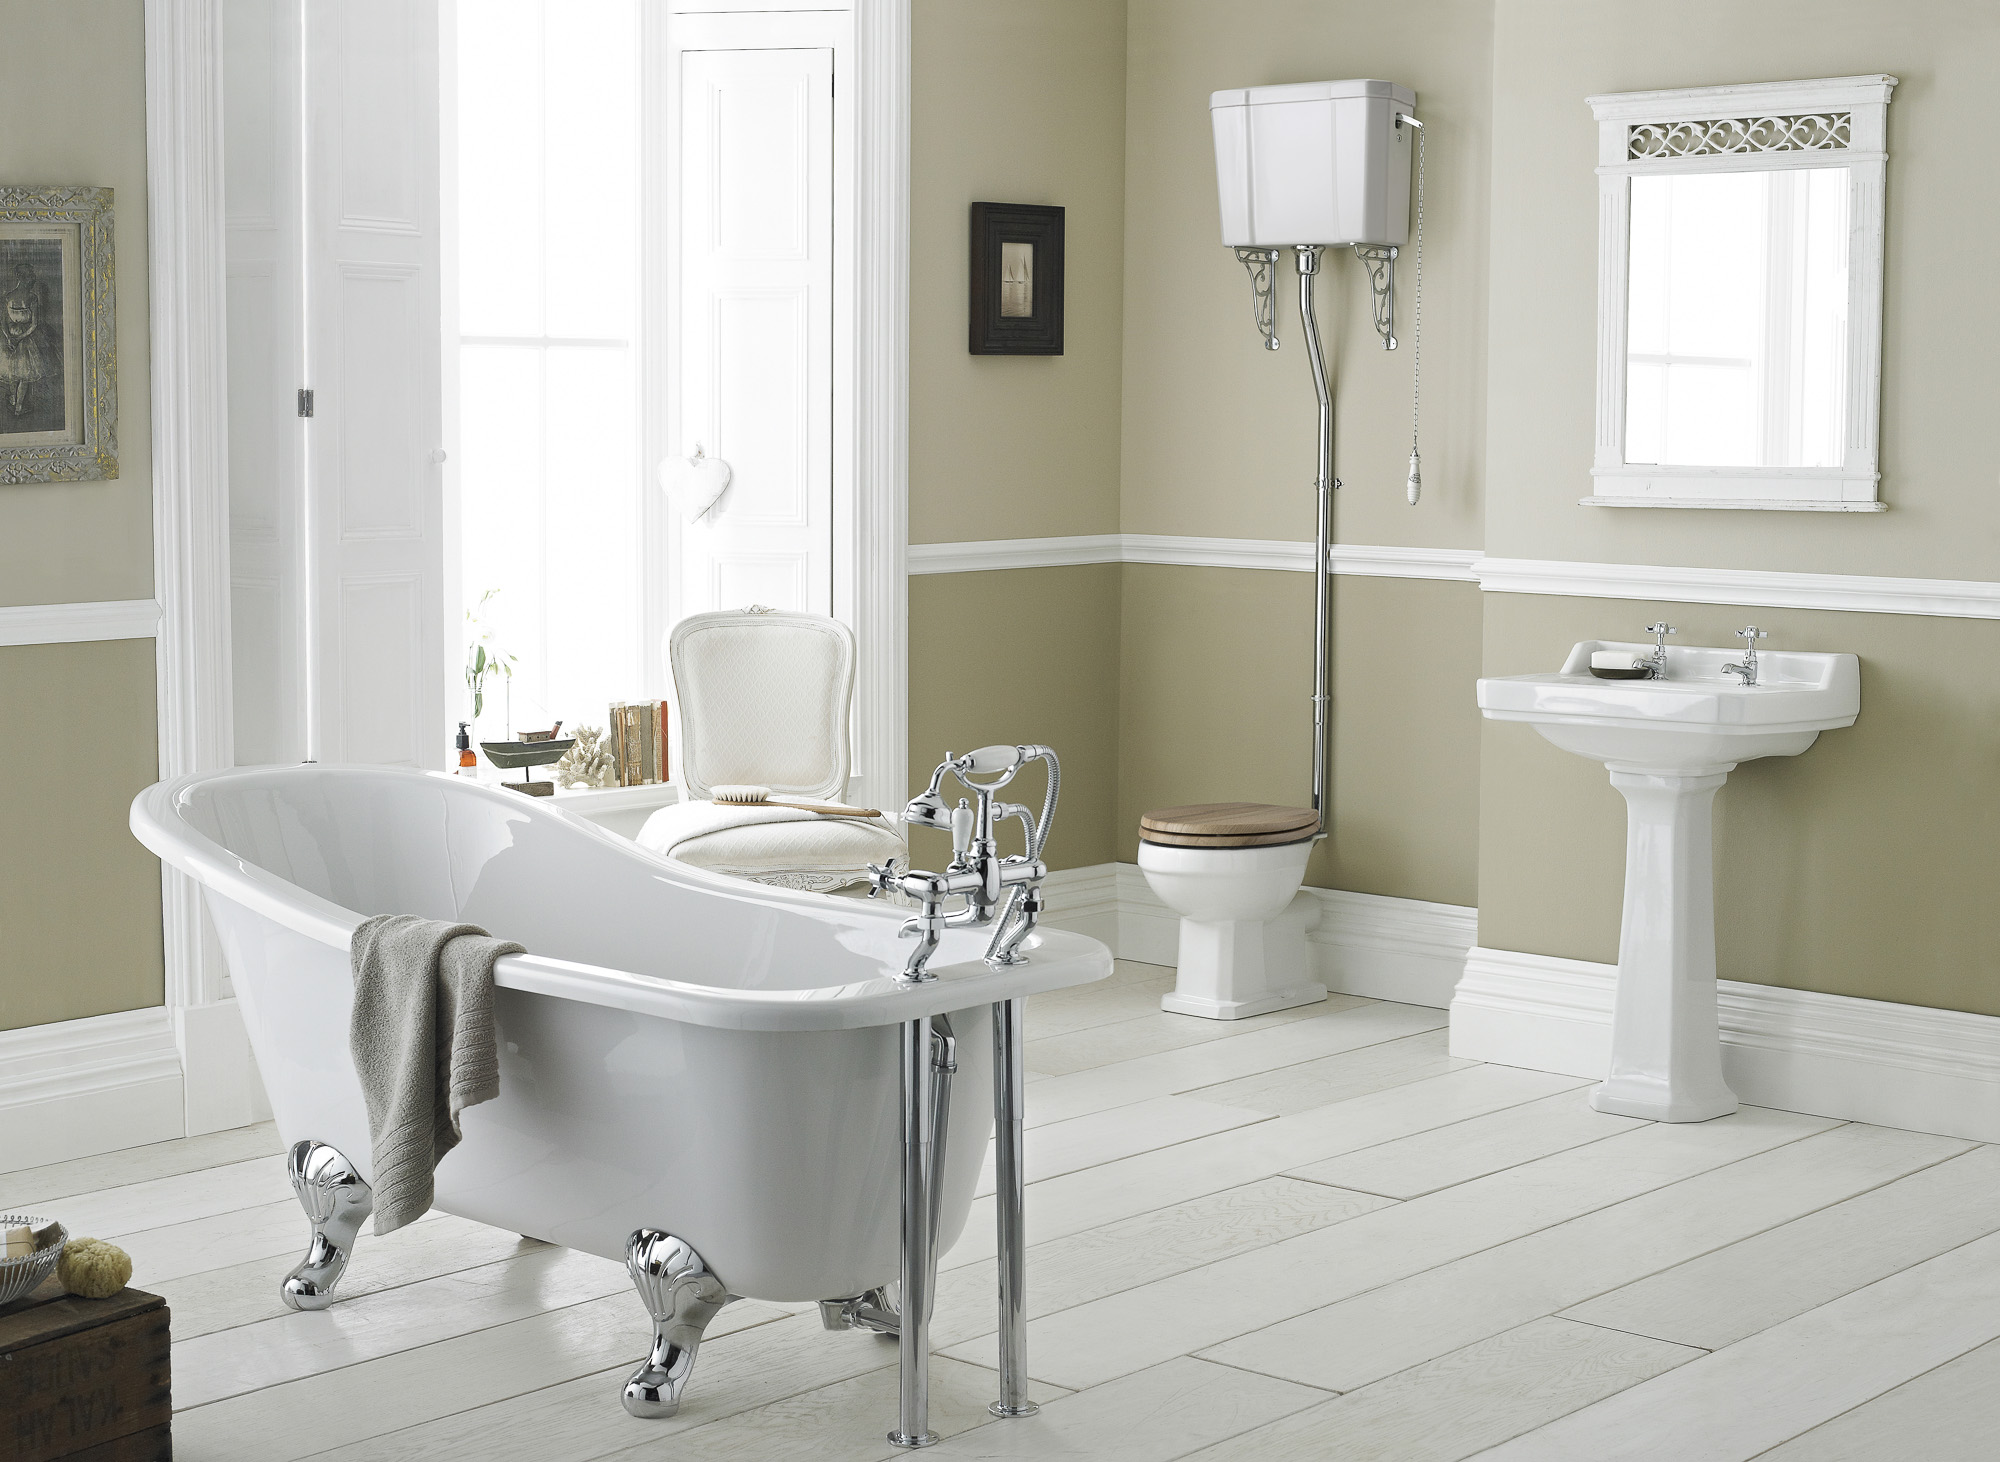 White bath in bathroom